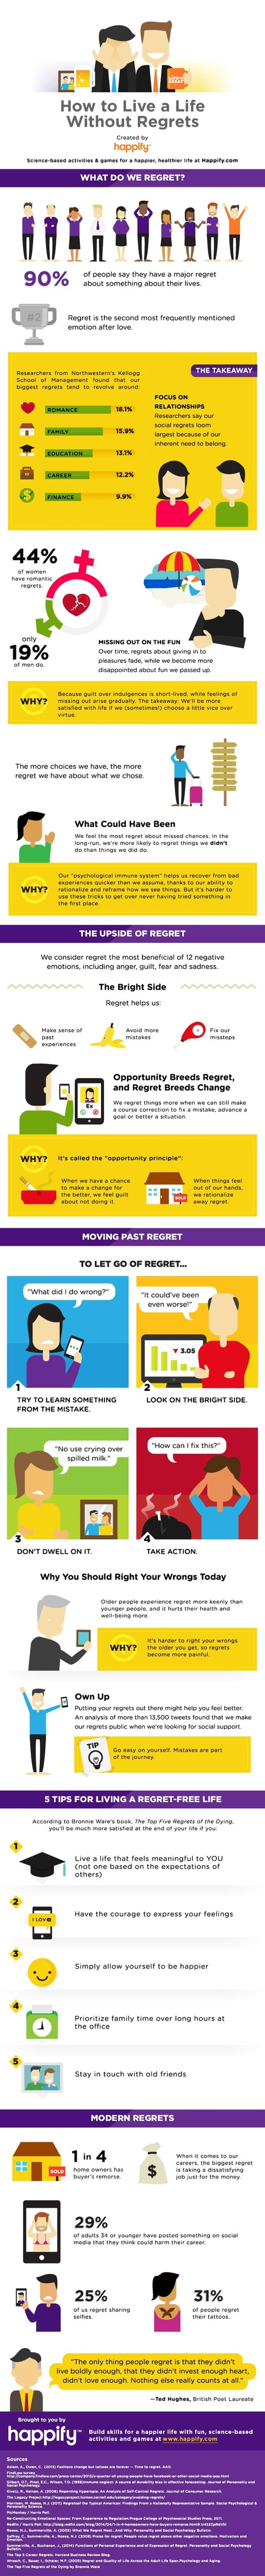 Infographic: Here's How to Live a Regret-Free Life | MarketingHits | Scoop.it